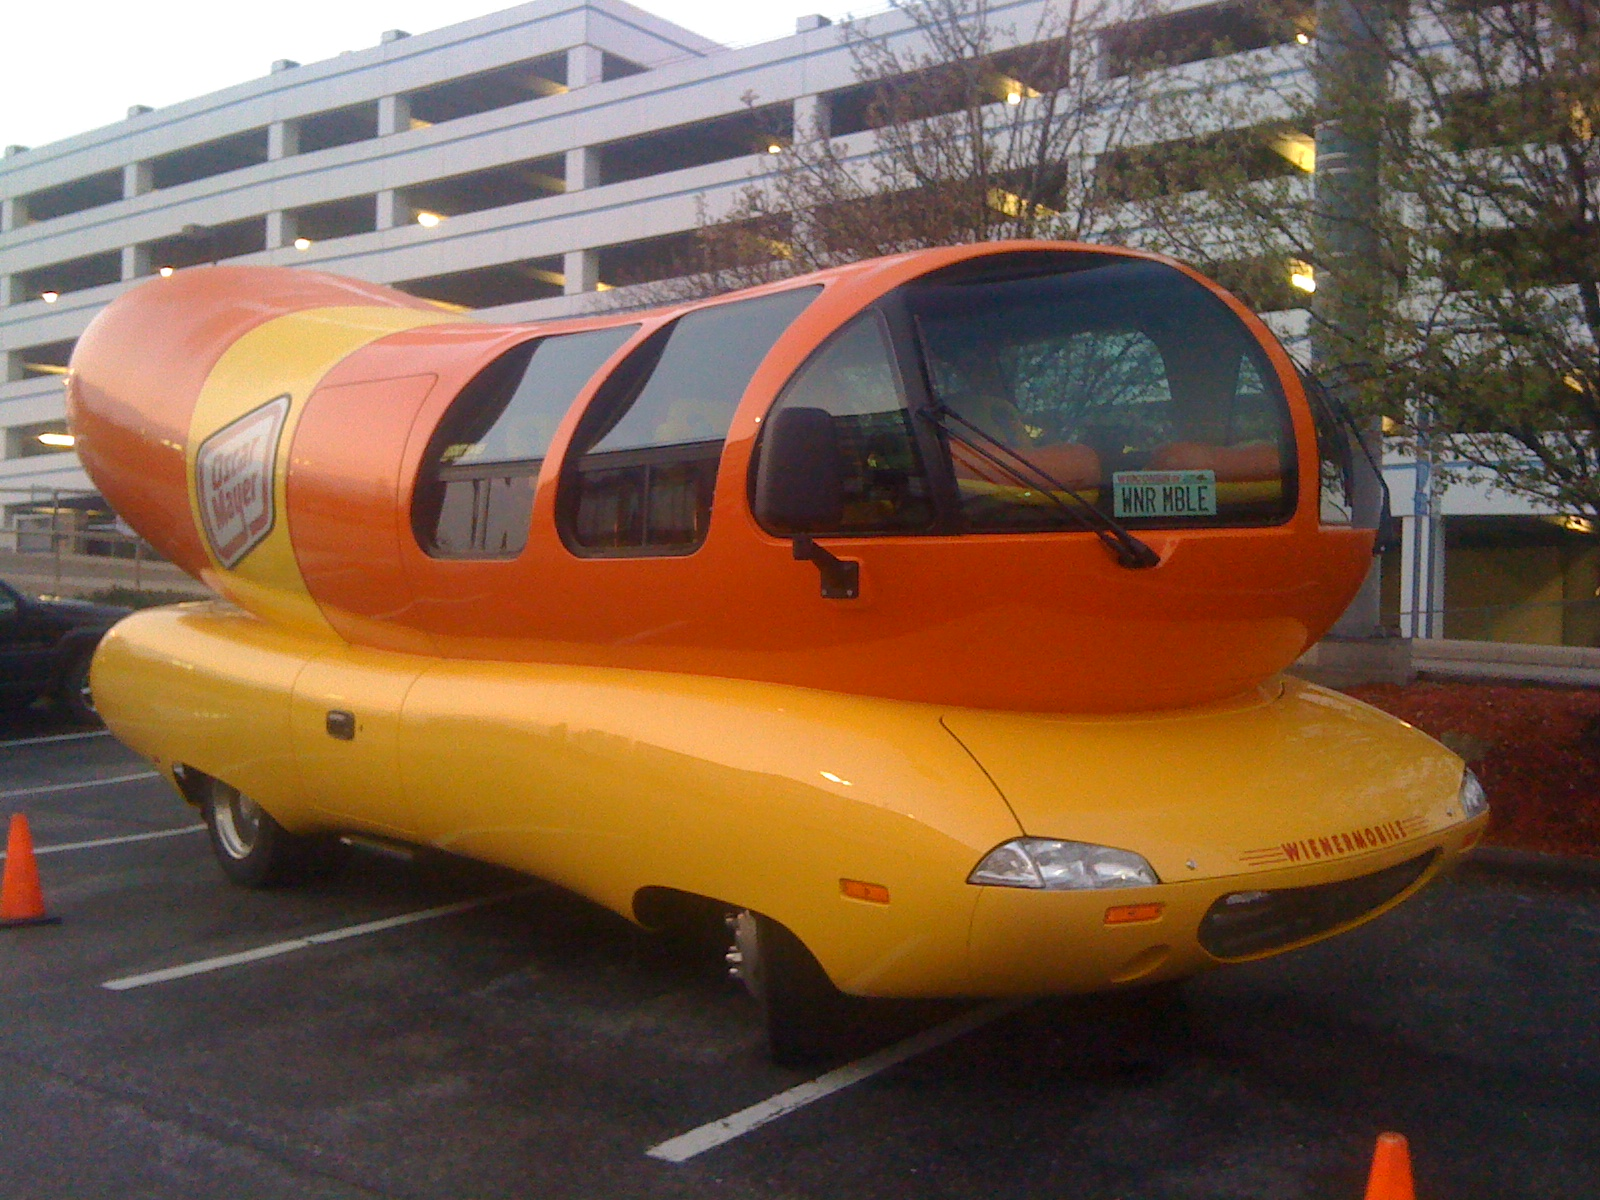 Wienermobile Down moreover Like Pitching Your Hot Dog Down A Hallway likewise A Weinermobile Visits Milwaukee No Baloney also Famous Cars together with Vintage Oscar Meyer Weinermobile. on oscar meyer weinermobile